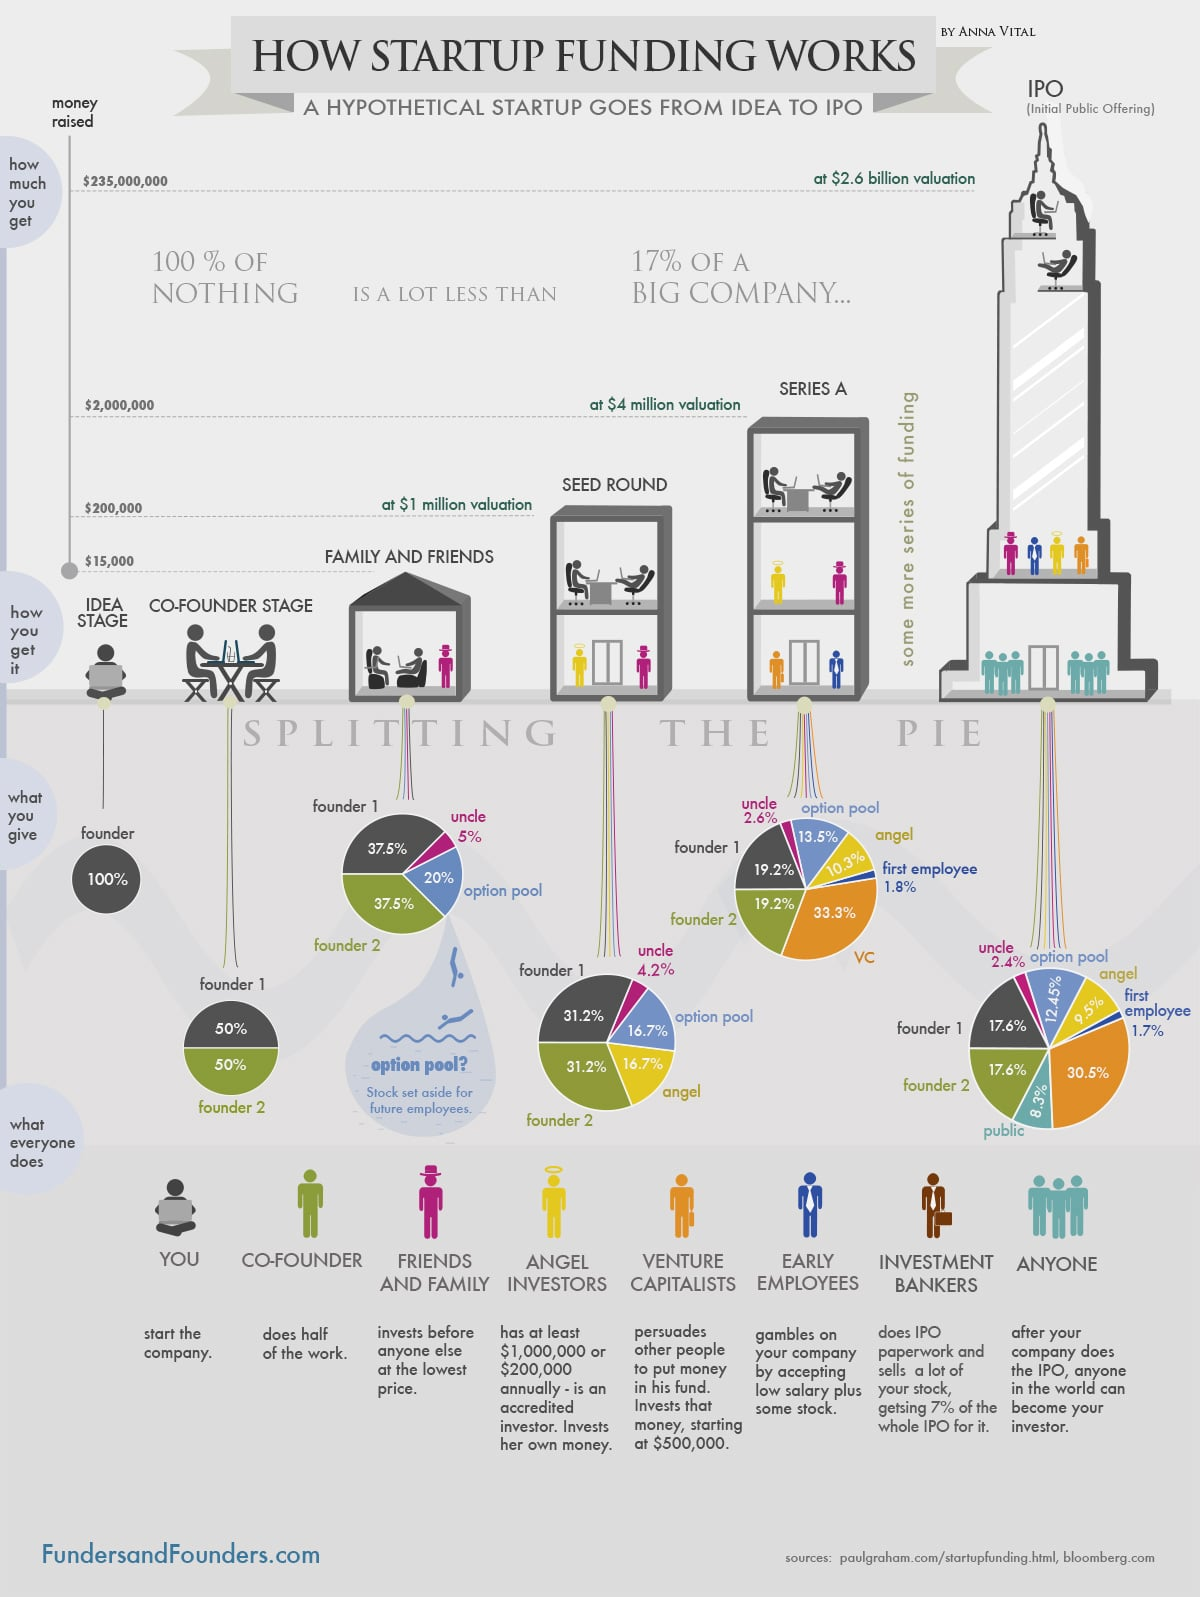 Startup Funding & How It Works: The Journey From Idea To IPO [Chart]